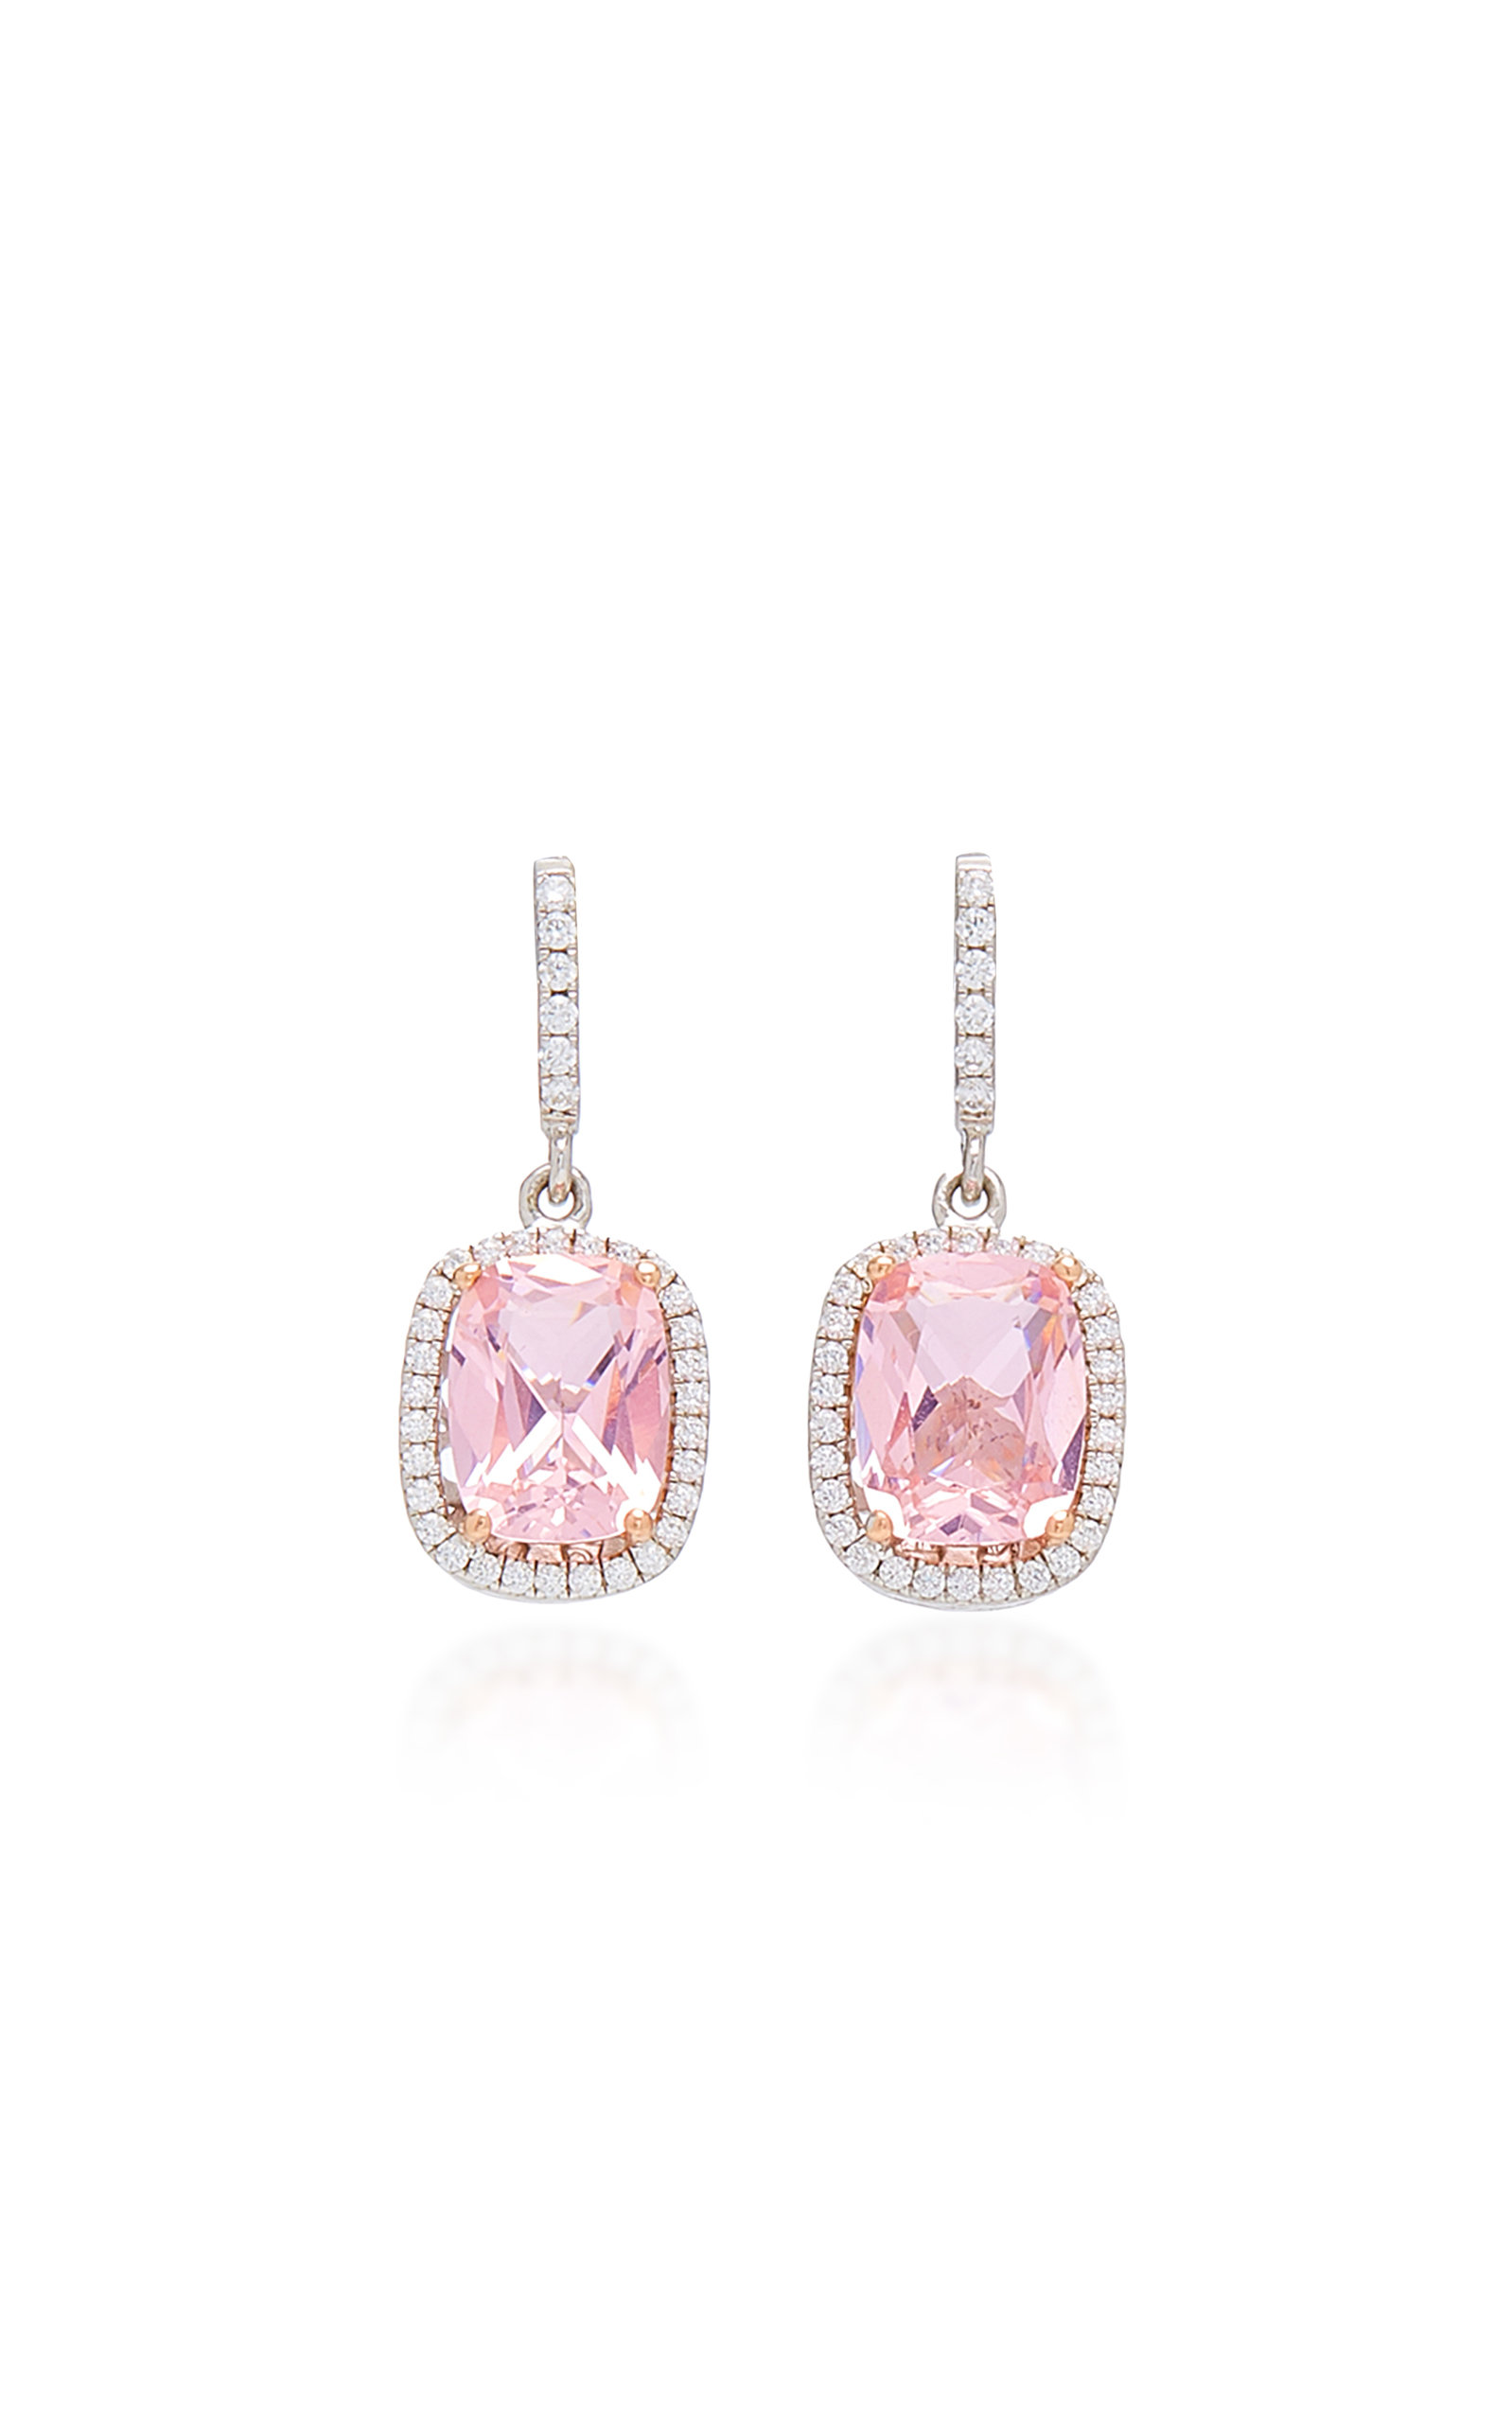 ANABELA CHAN 18K White Gold Morganite And Diamond Earrings in Pink